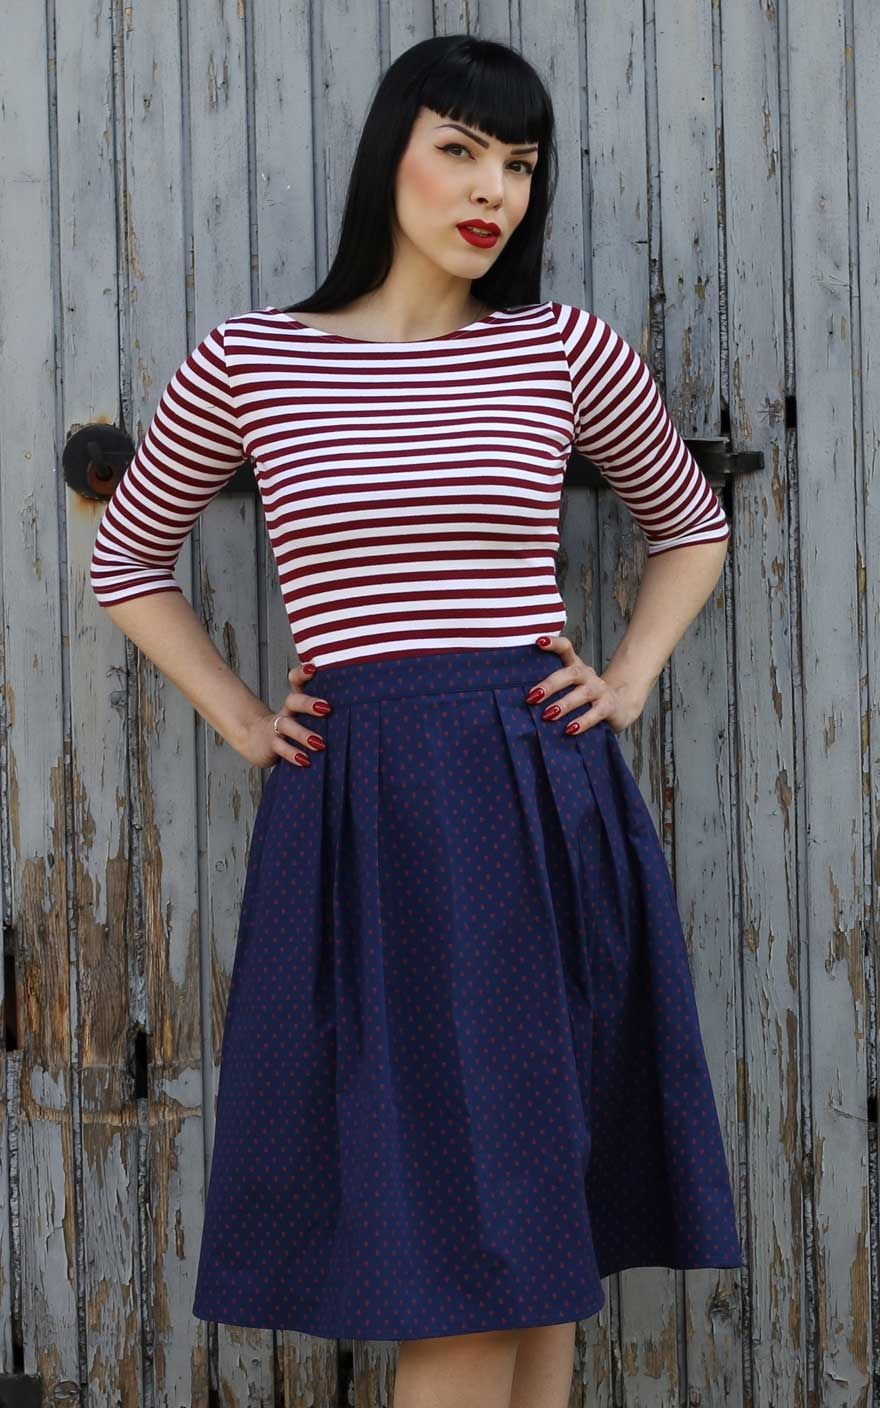 f20d4aa943887 Rumble59 Sailor Swing Dress - All hands on deck! | Rockabilly Rules